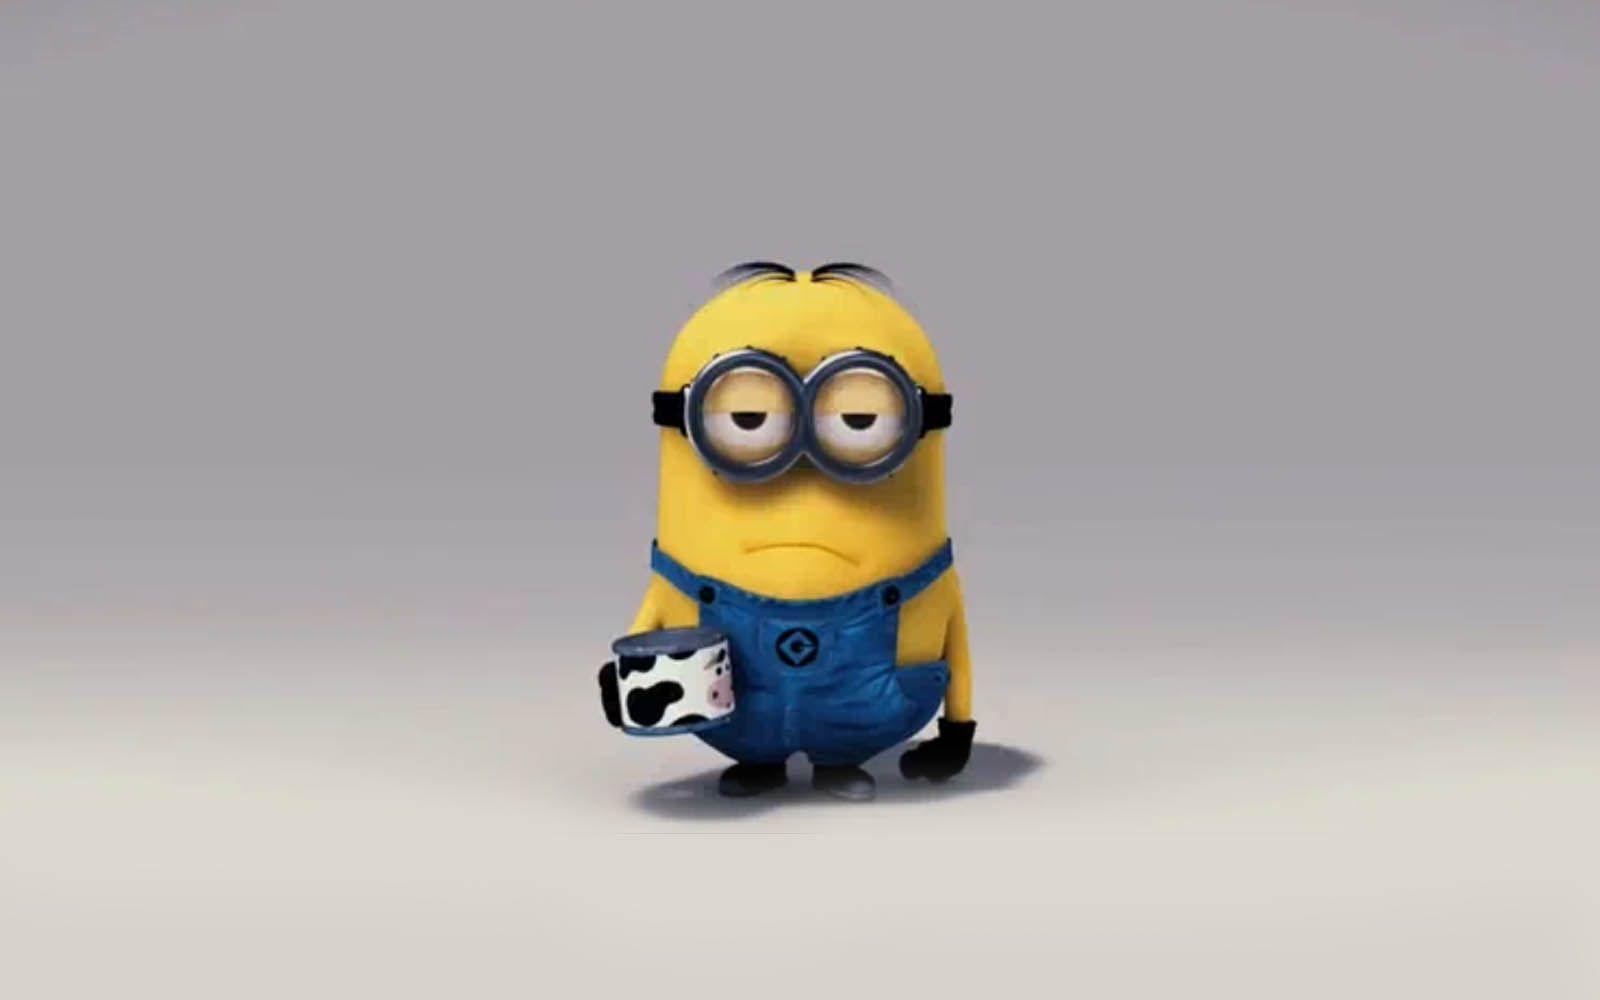 Minion Wallpapers 3d 720p Phone Wallpapers Wallpaper Cave